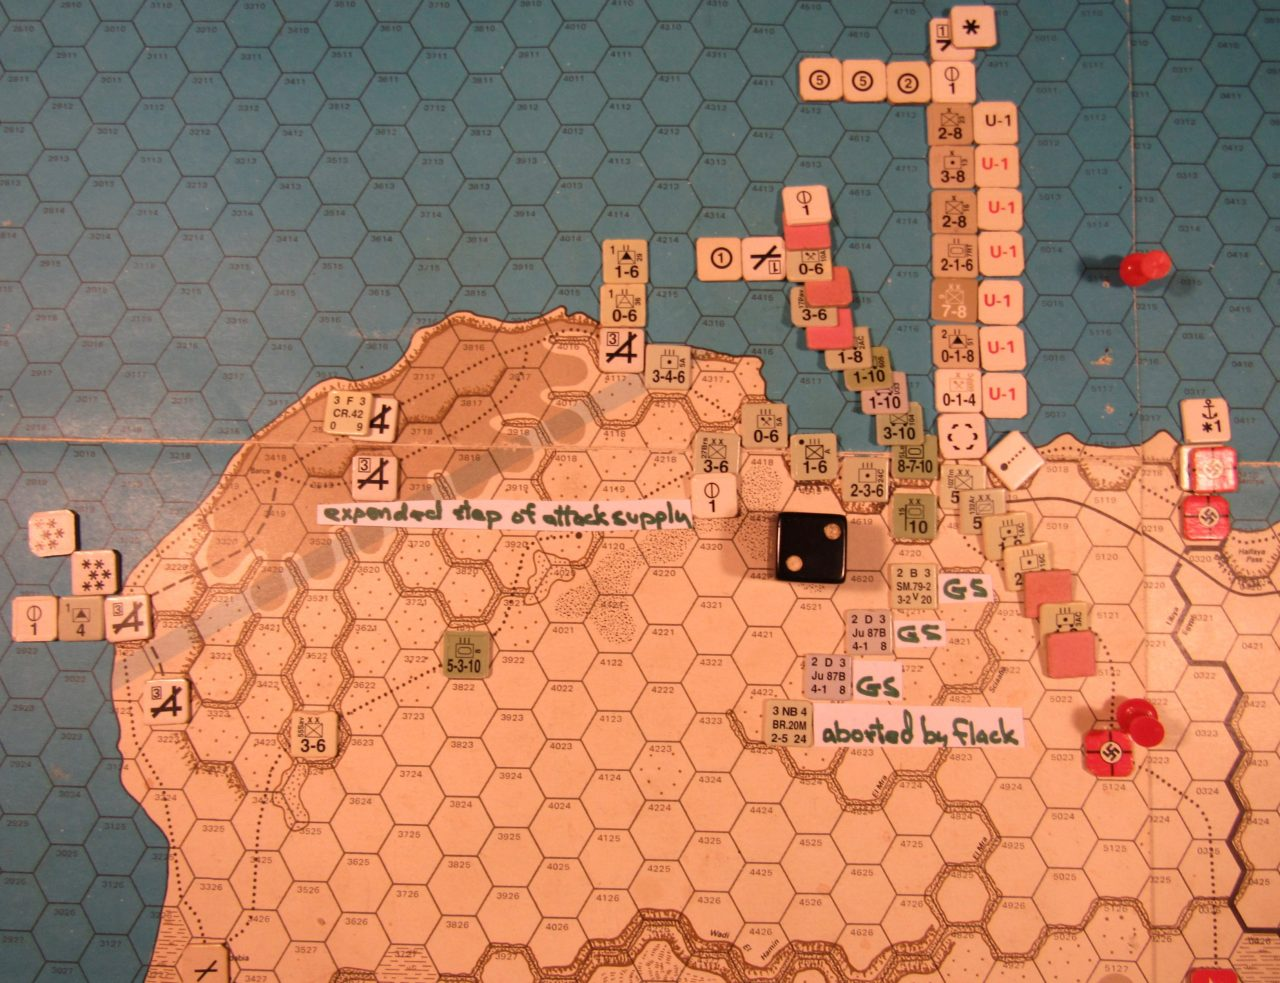 WW ME/ER-II/Crete Scenario May I 41 Axis Combat Phase dispositions at the moment of the combat die roll; Axis units adjacent to Tobruk w/ red markers did not participate in the attack